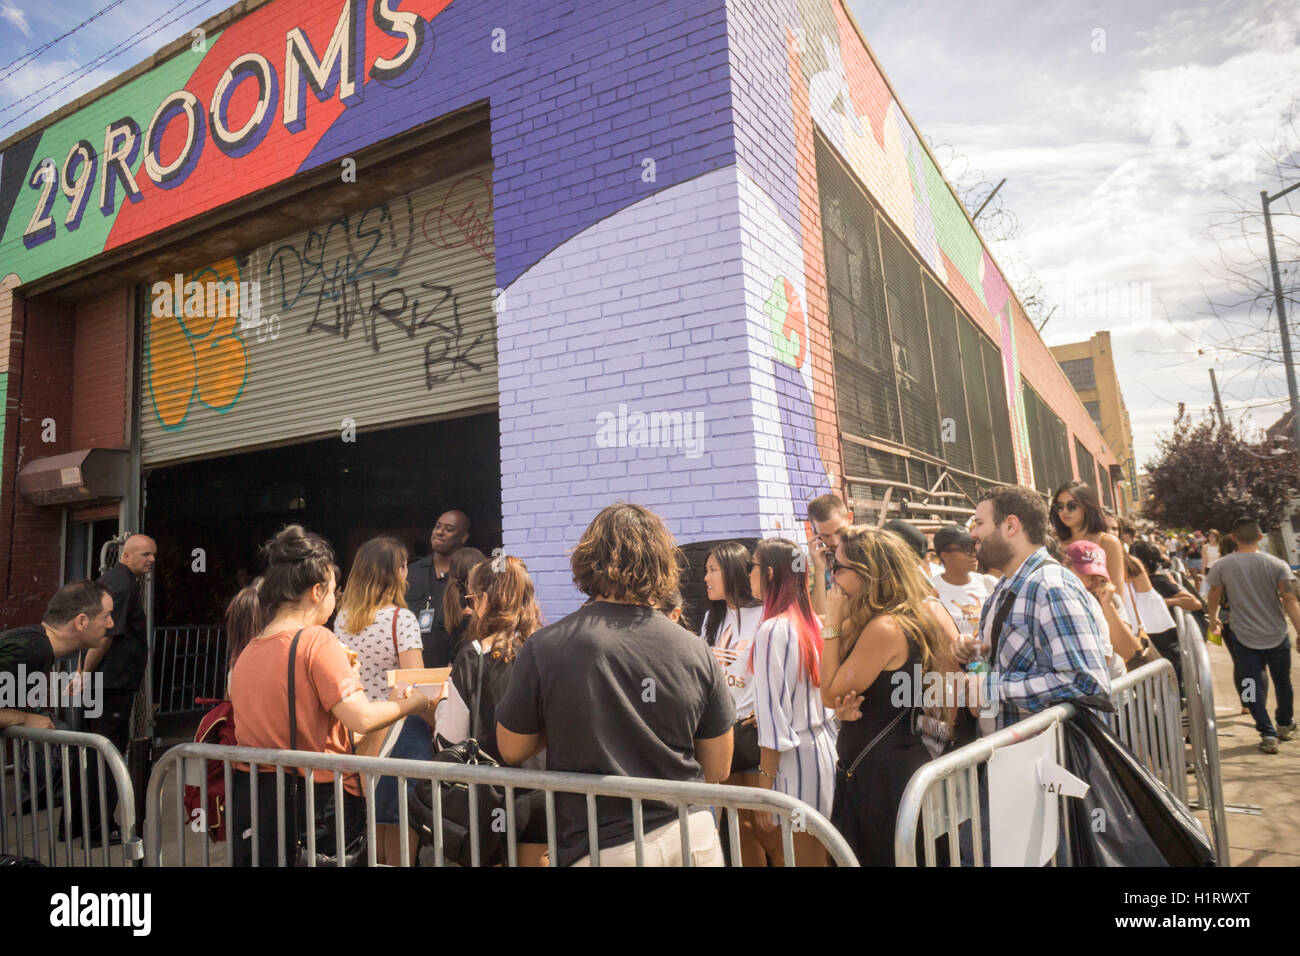 Thousands of millennials descend on the Bushwick neighborhood of Brooklyn to take in the experiential 29 Rooms installation Stock Photo